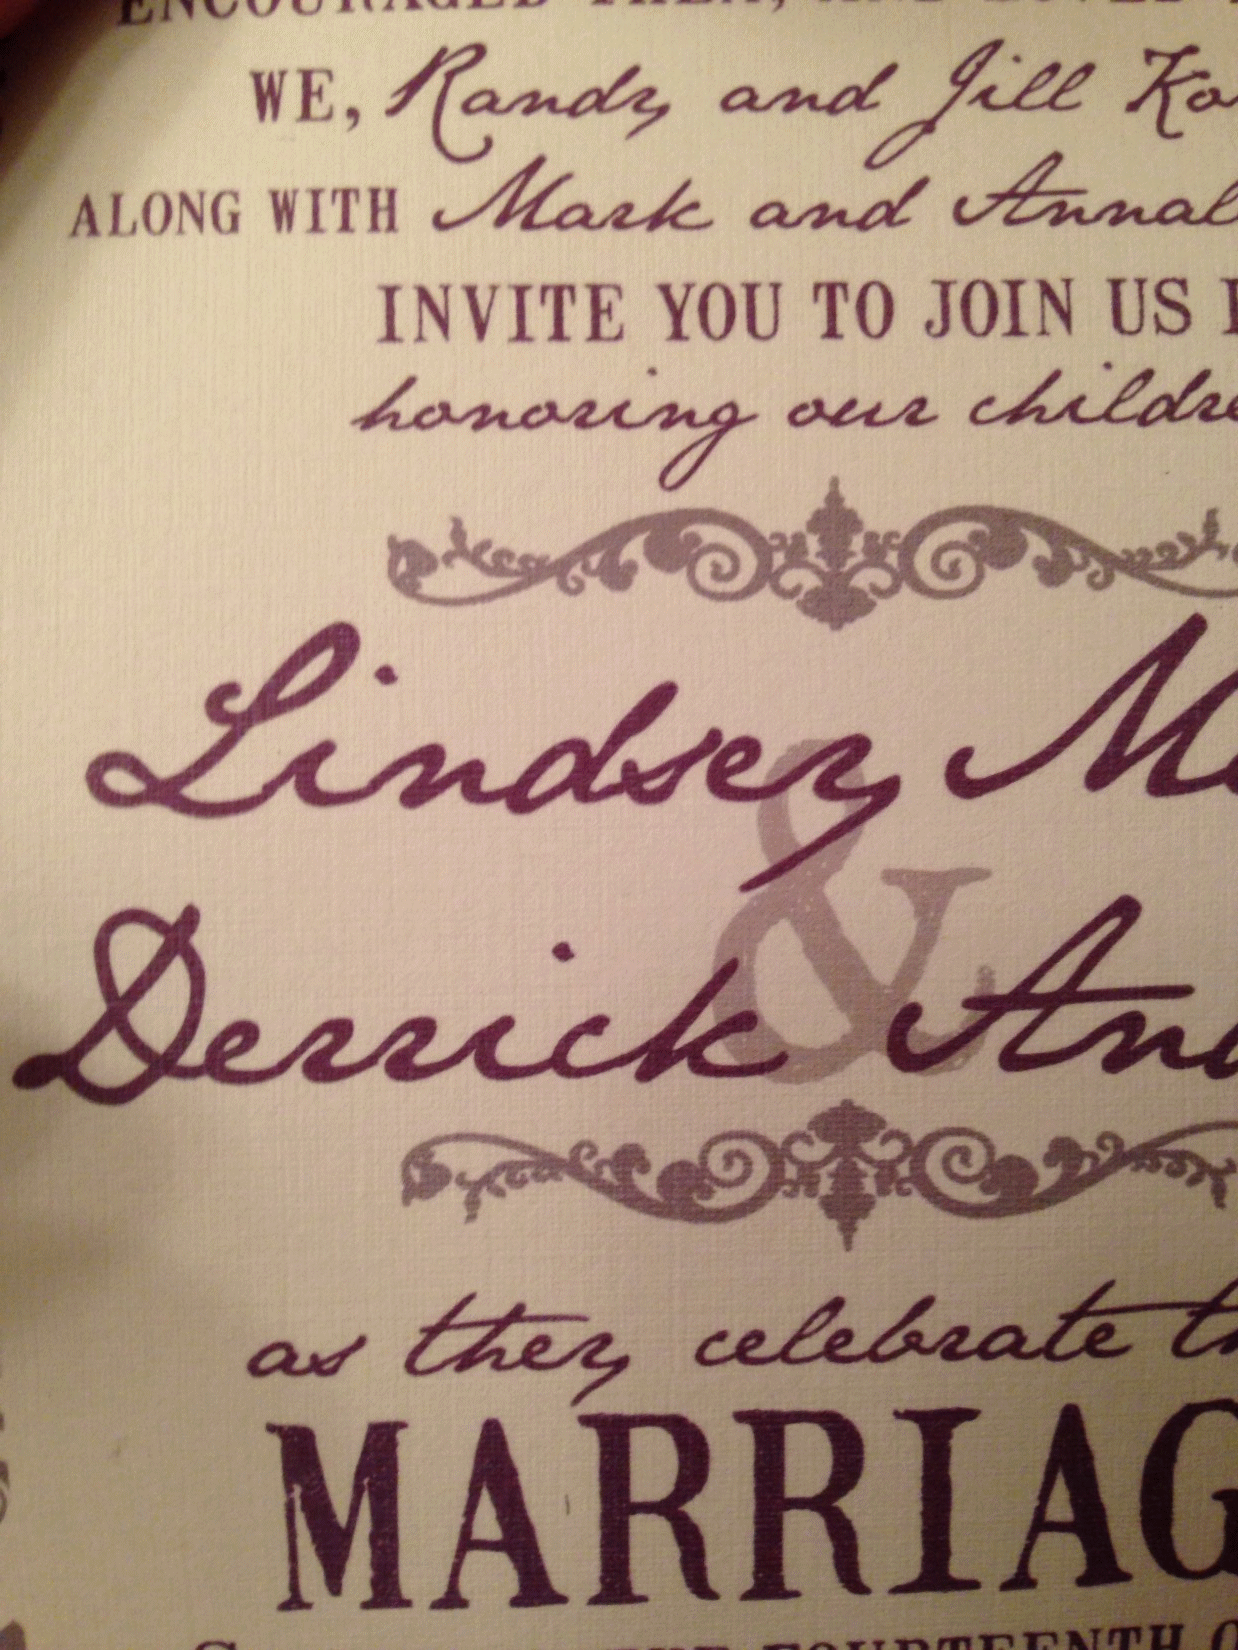 I'm curious what the name of the script font is. Thanks in advance!